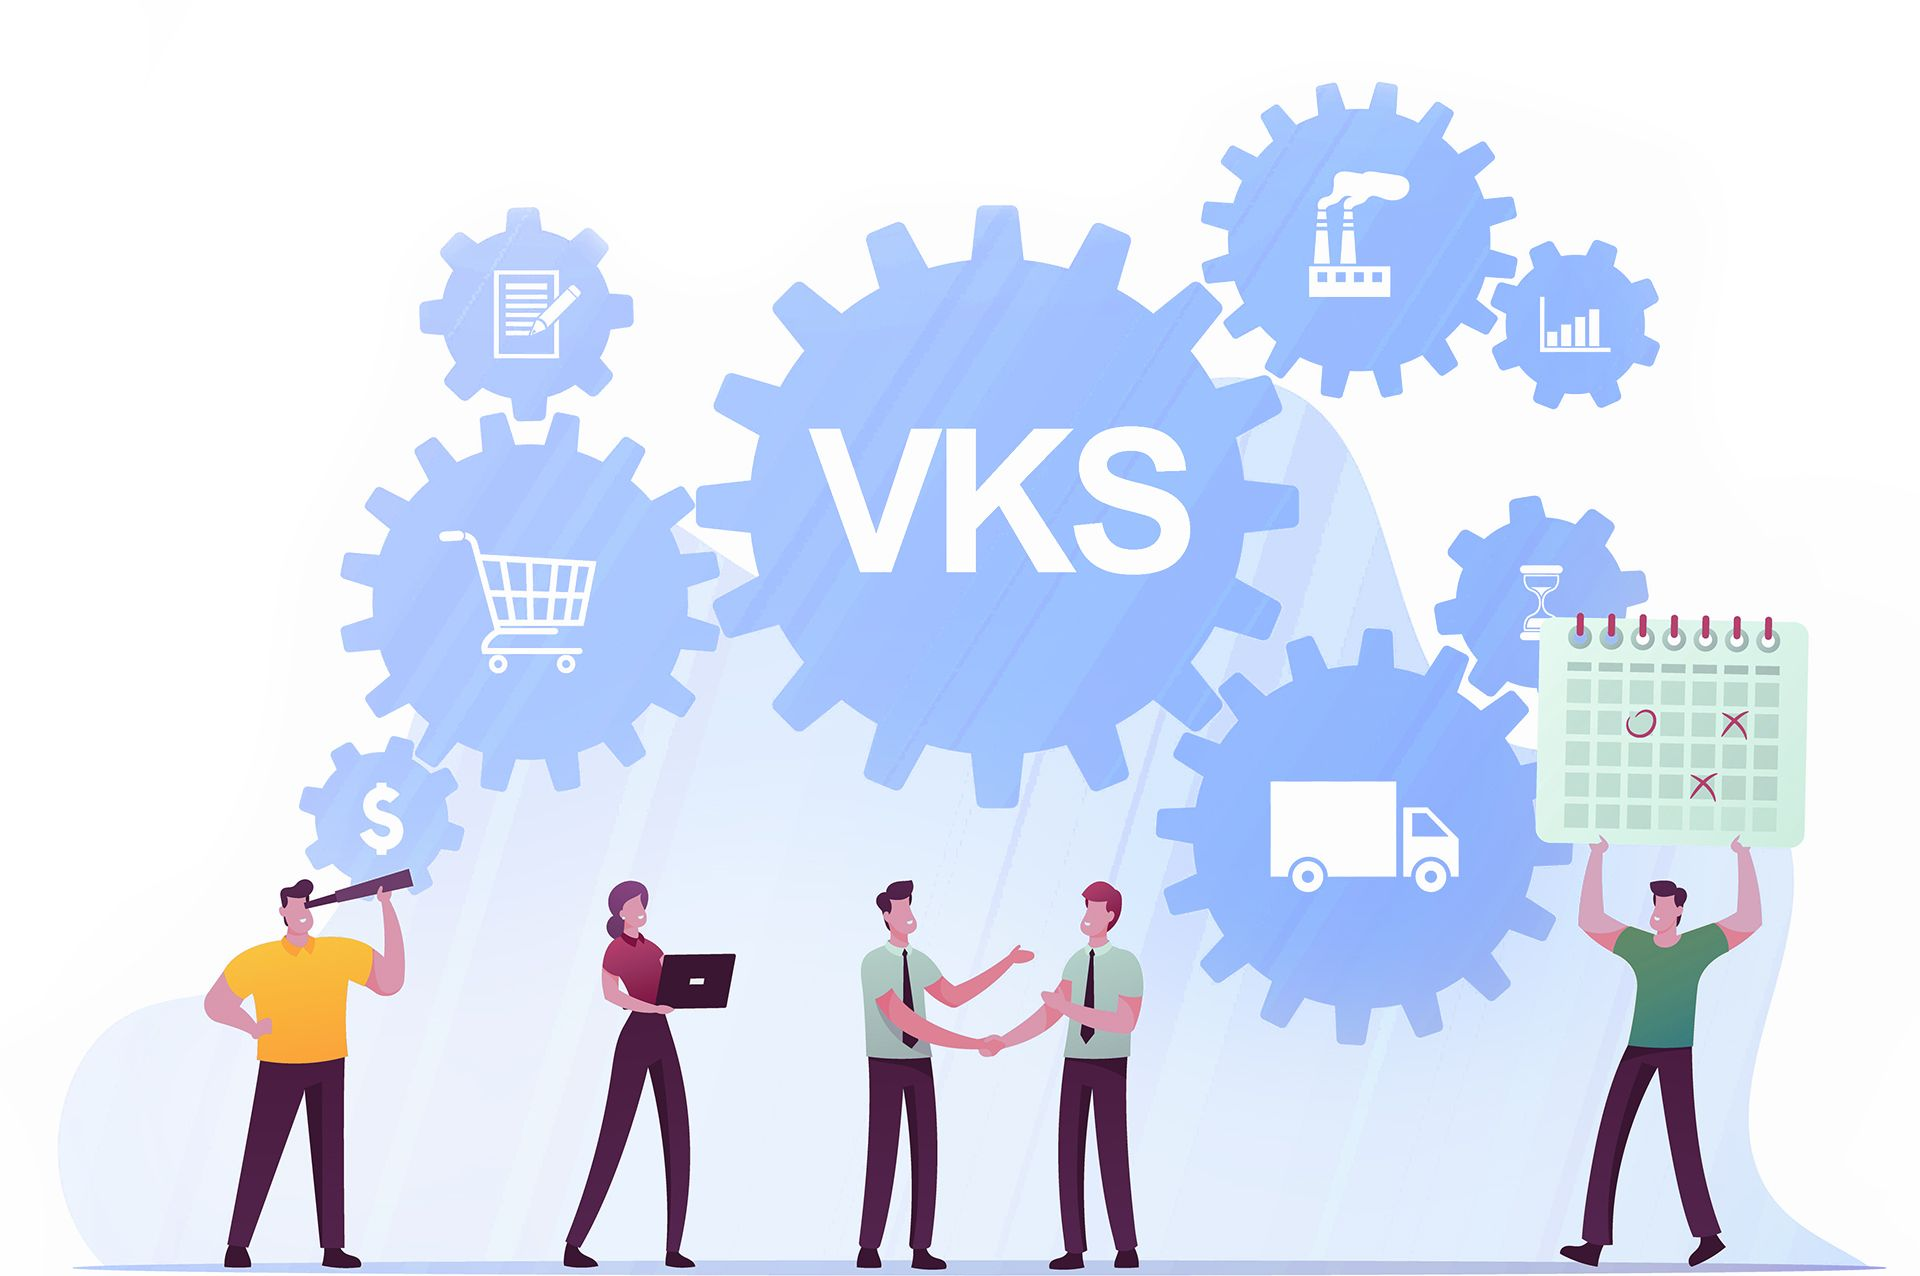 Benefits of continuous improvement with VKS